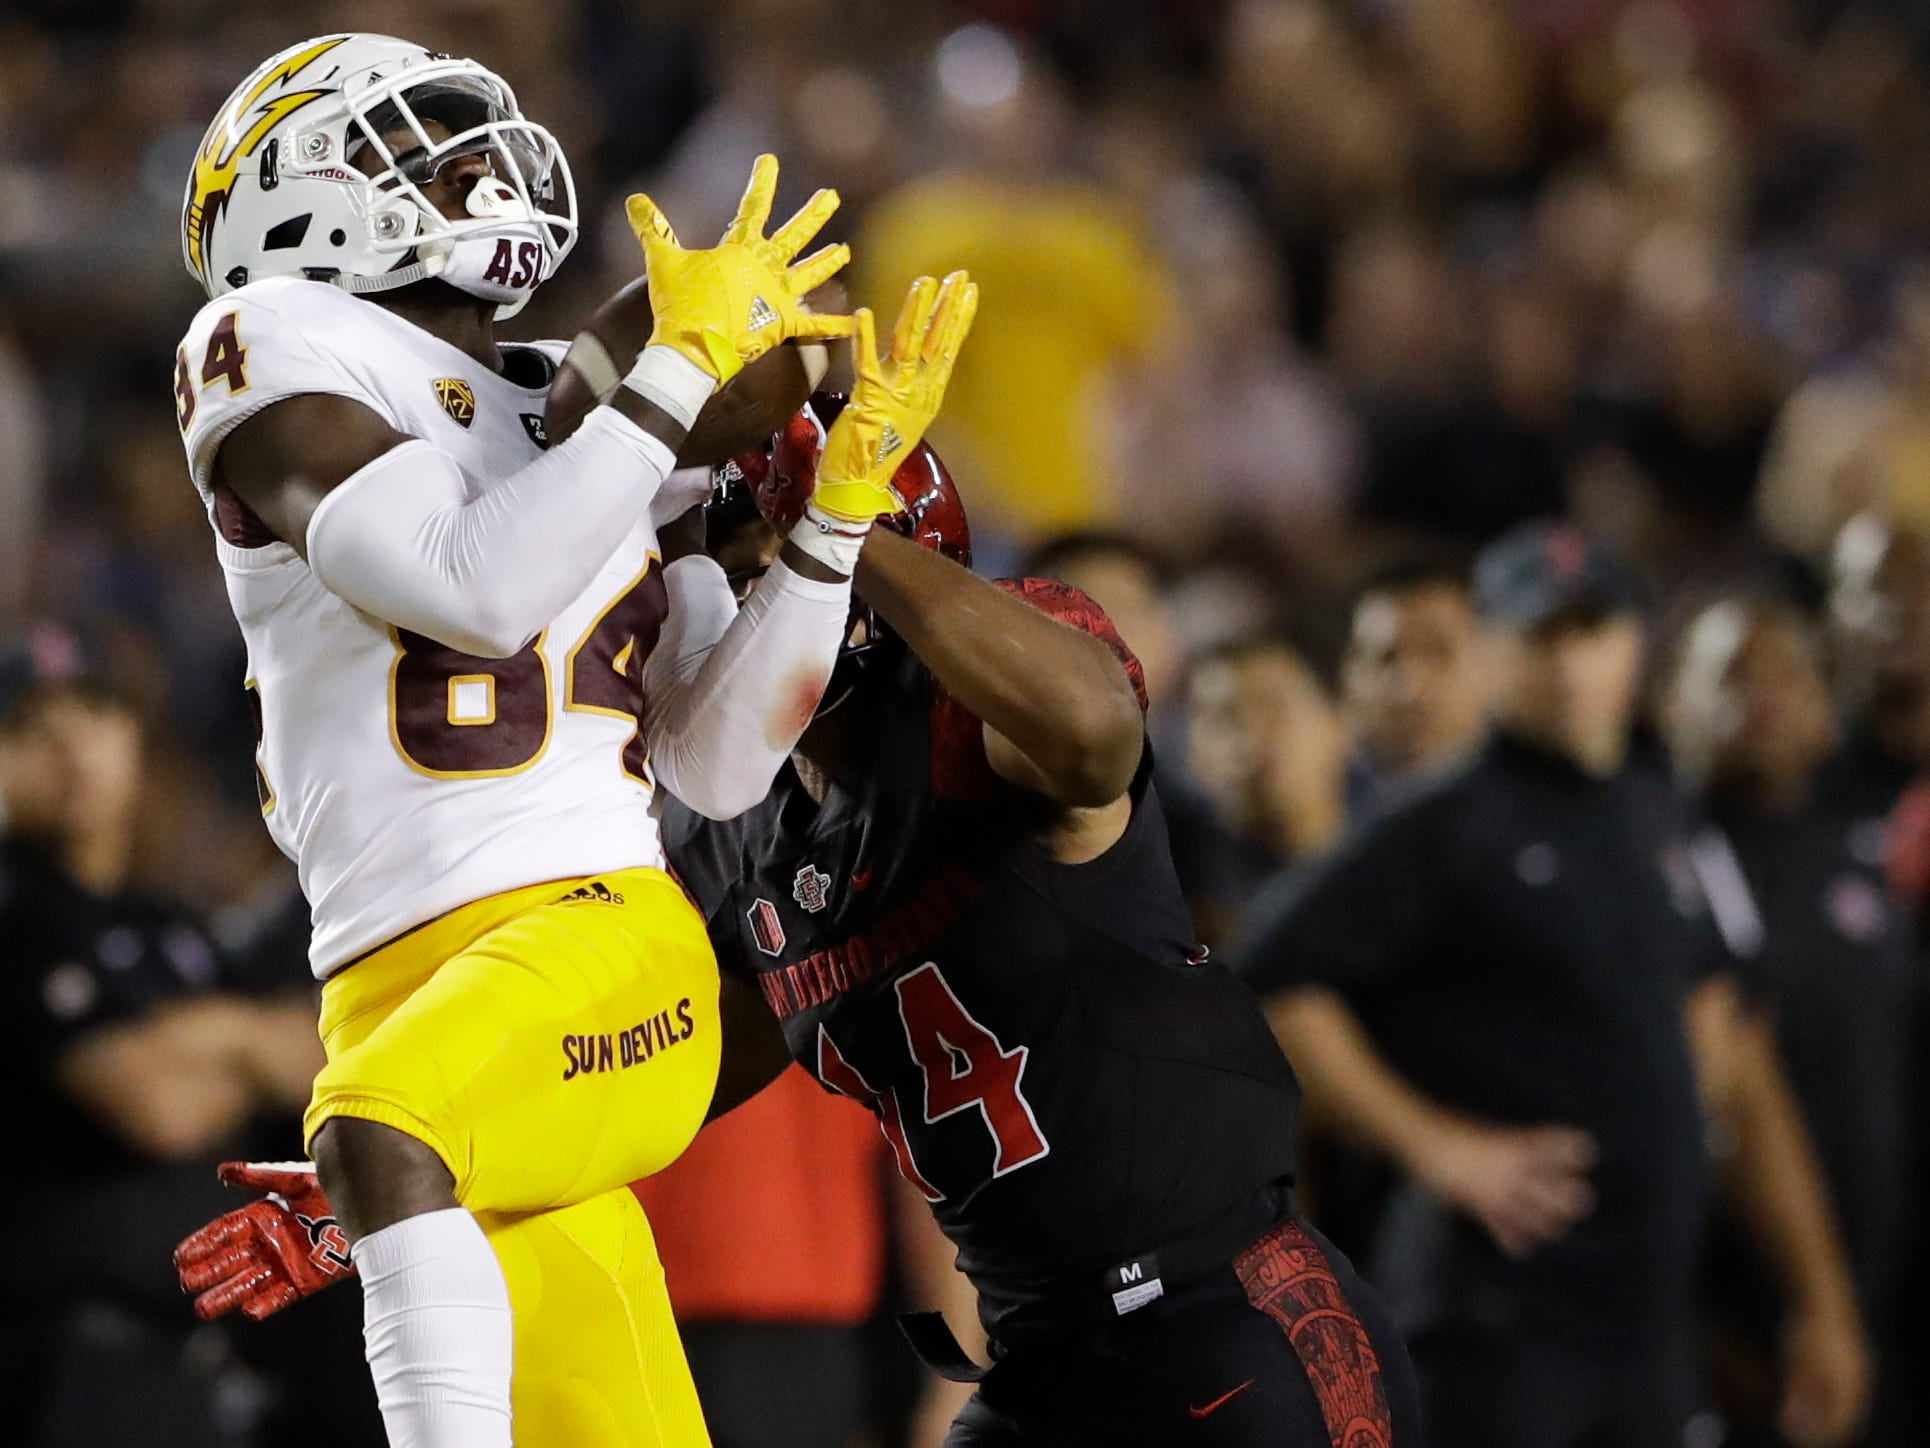 Arizona State wide receiver Tyerell Baldonado-Kaeiopu hauls in a pass as San Diego State safety Tariq Thompson defends during the first half of an NCAA college football game, Saturday, Sept. 15, 2018, in San Diego. (AP Photo/Gregory Bull)